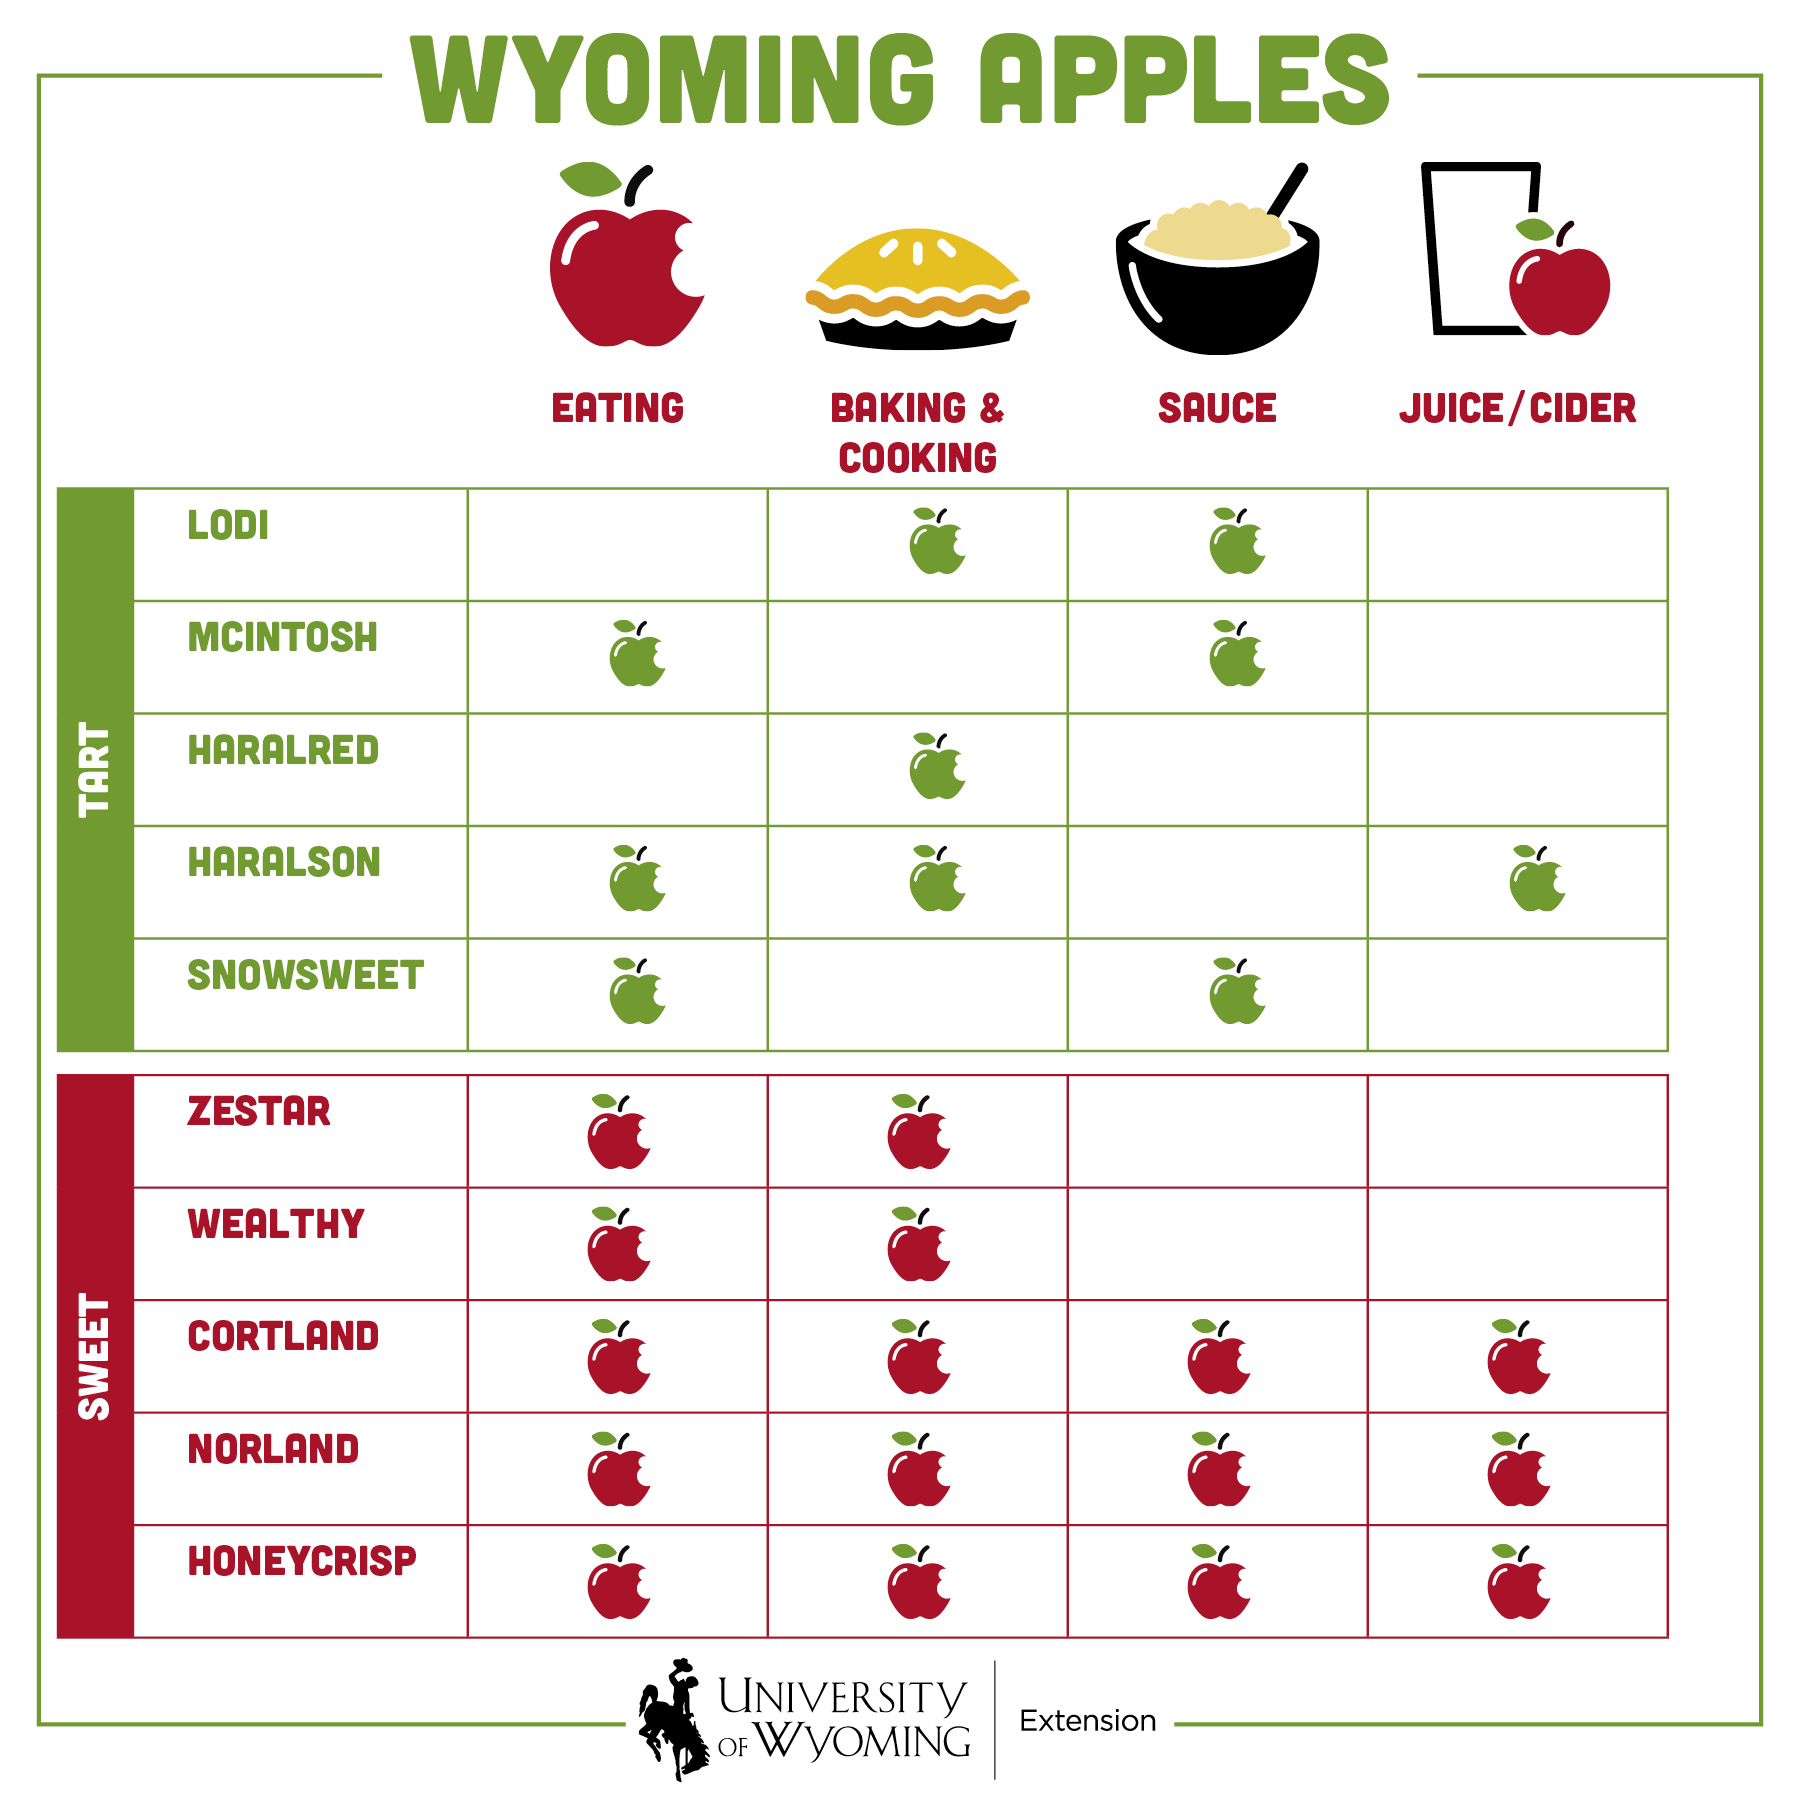 10 varieties of apples divided between tart and sweet with best use indicated